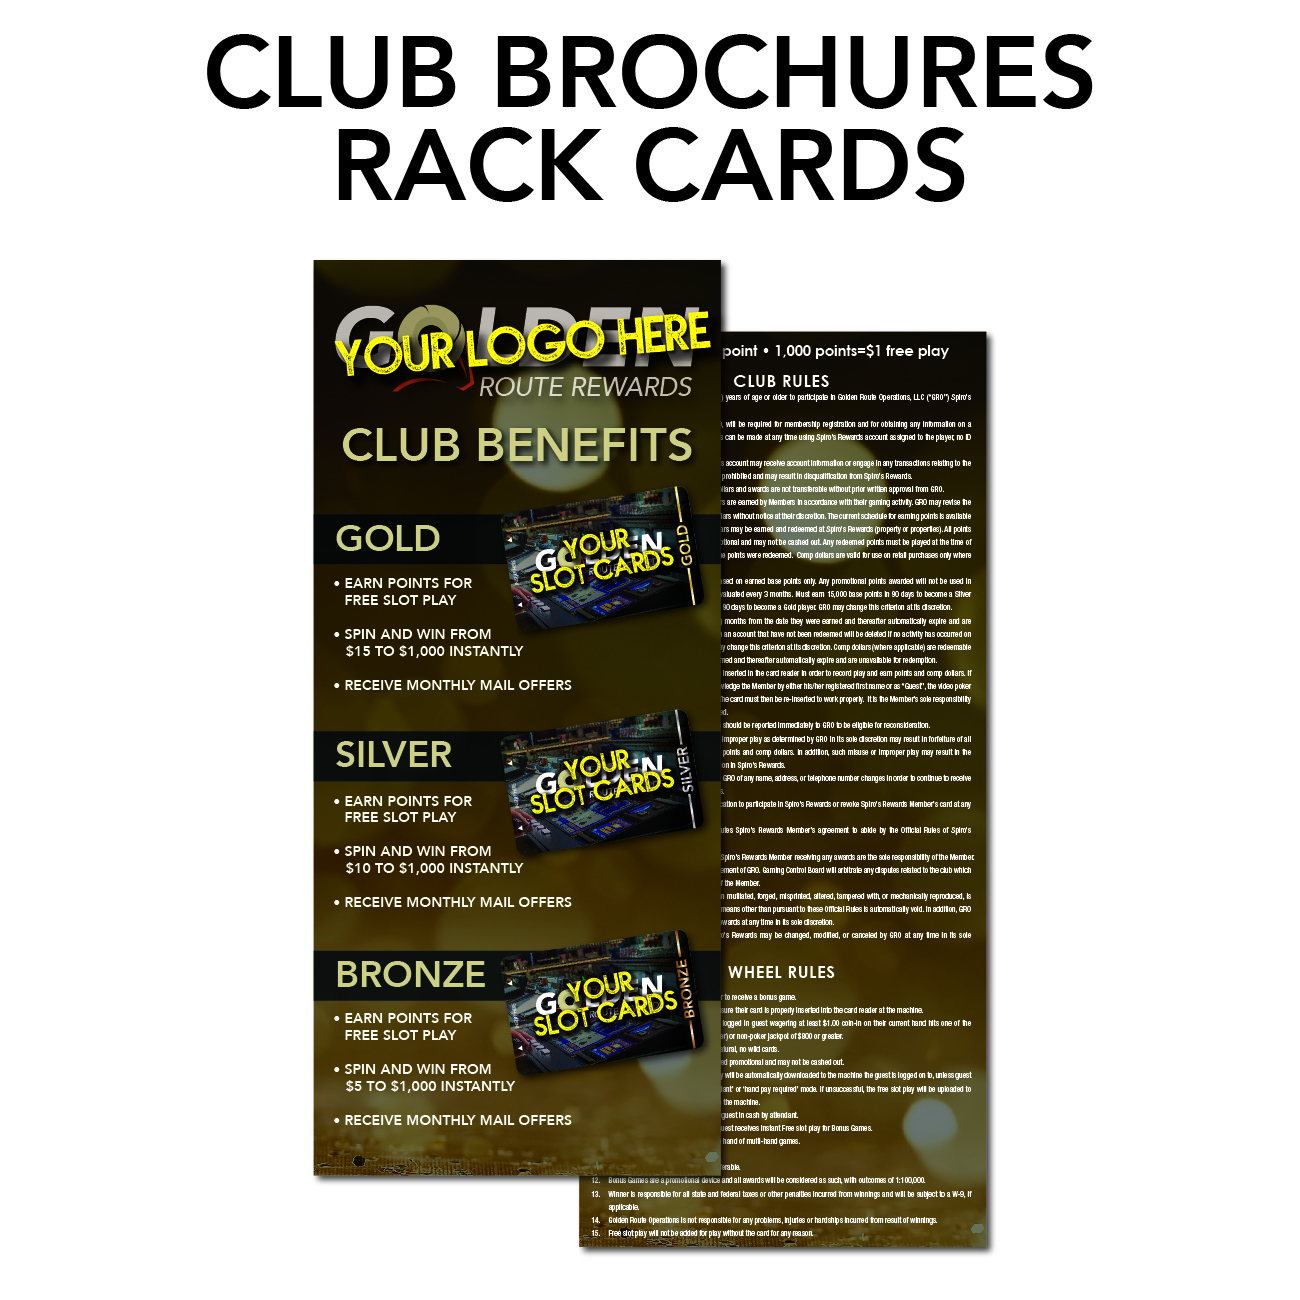 gro route rewards marketing needs club brochures and rack cards